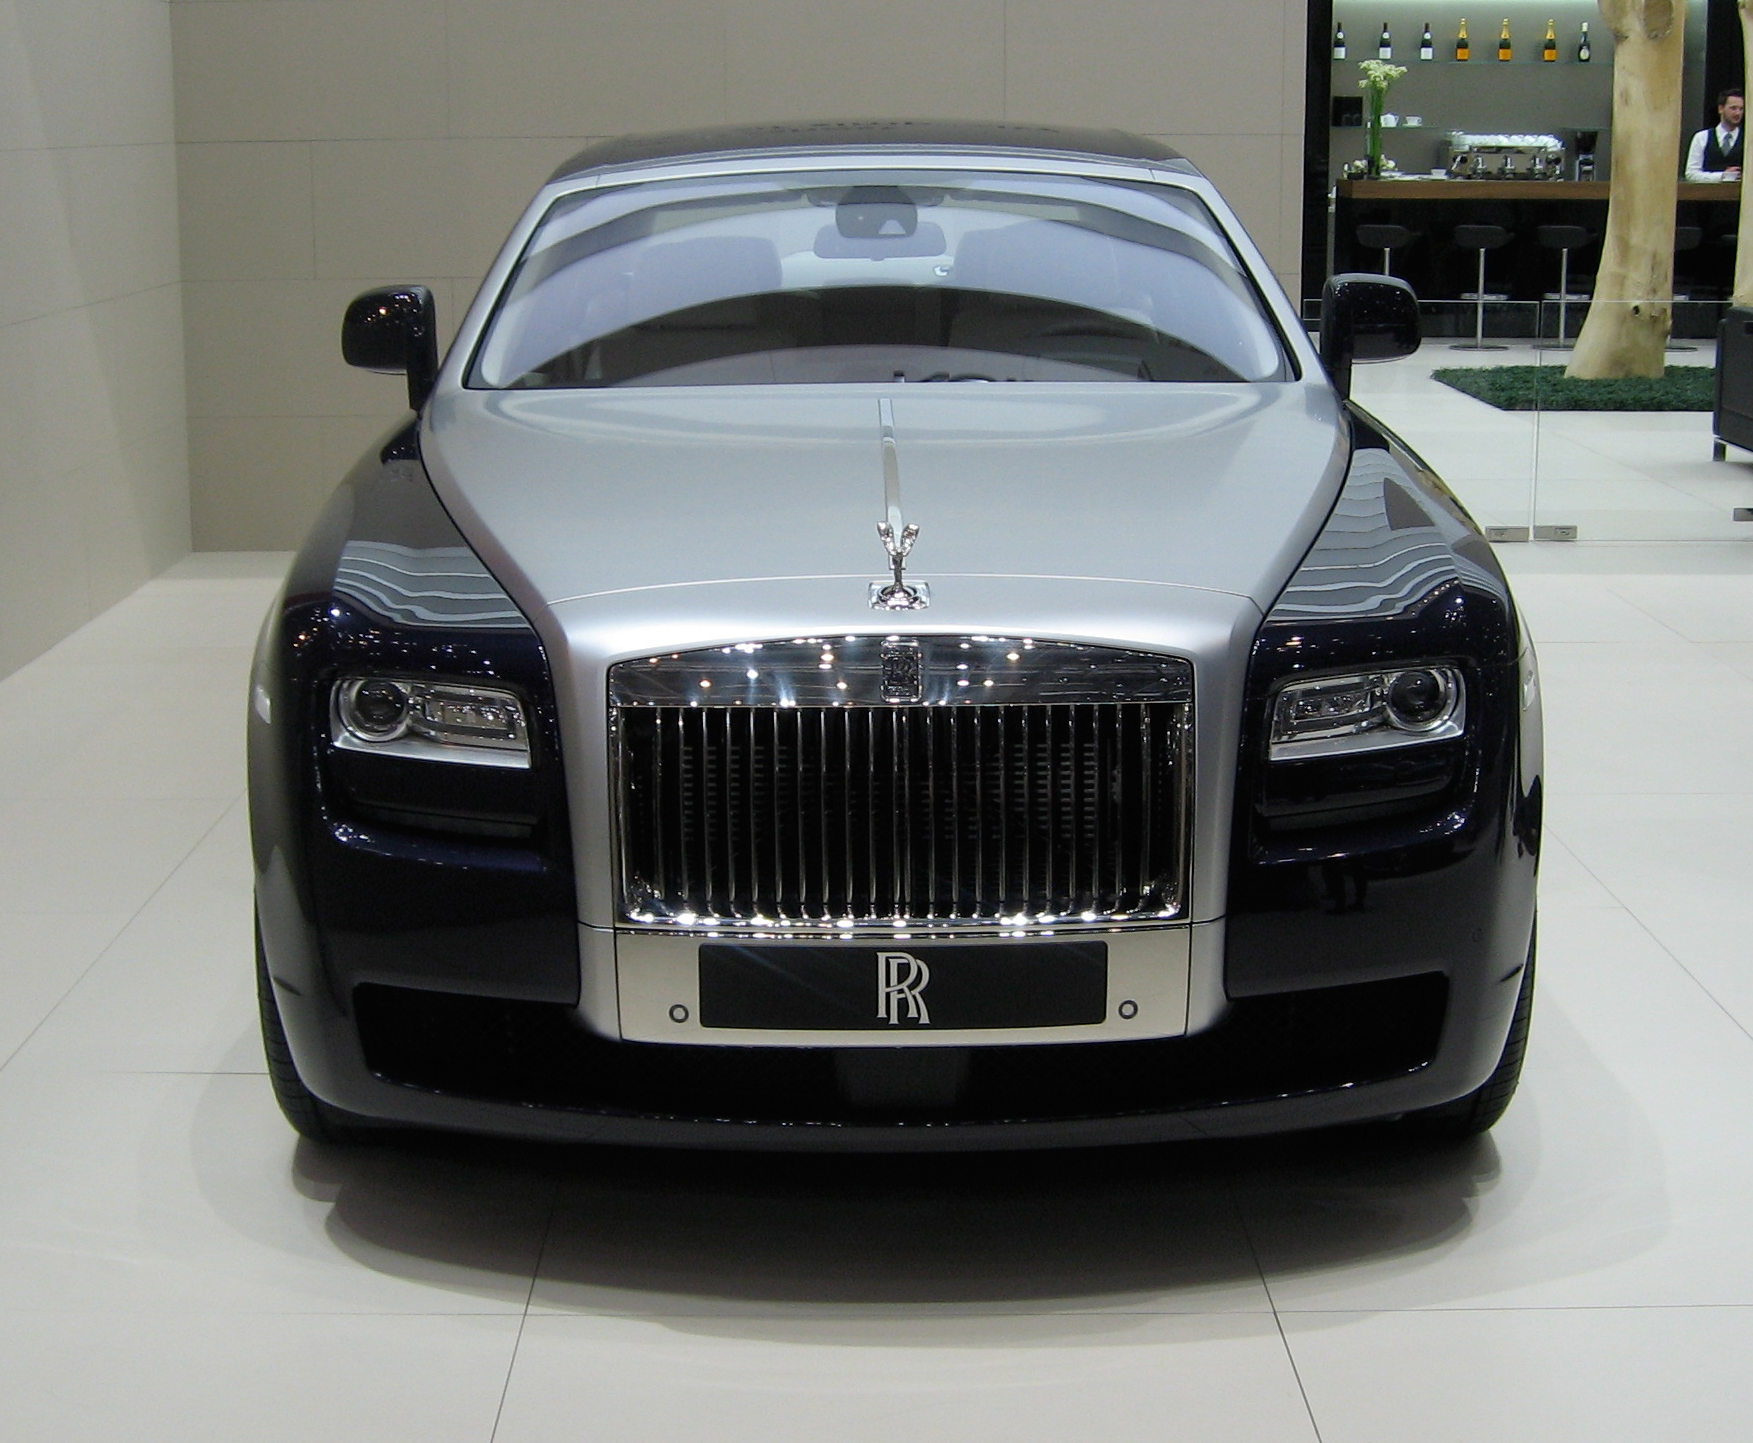 rolls-royce ghost images #11